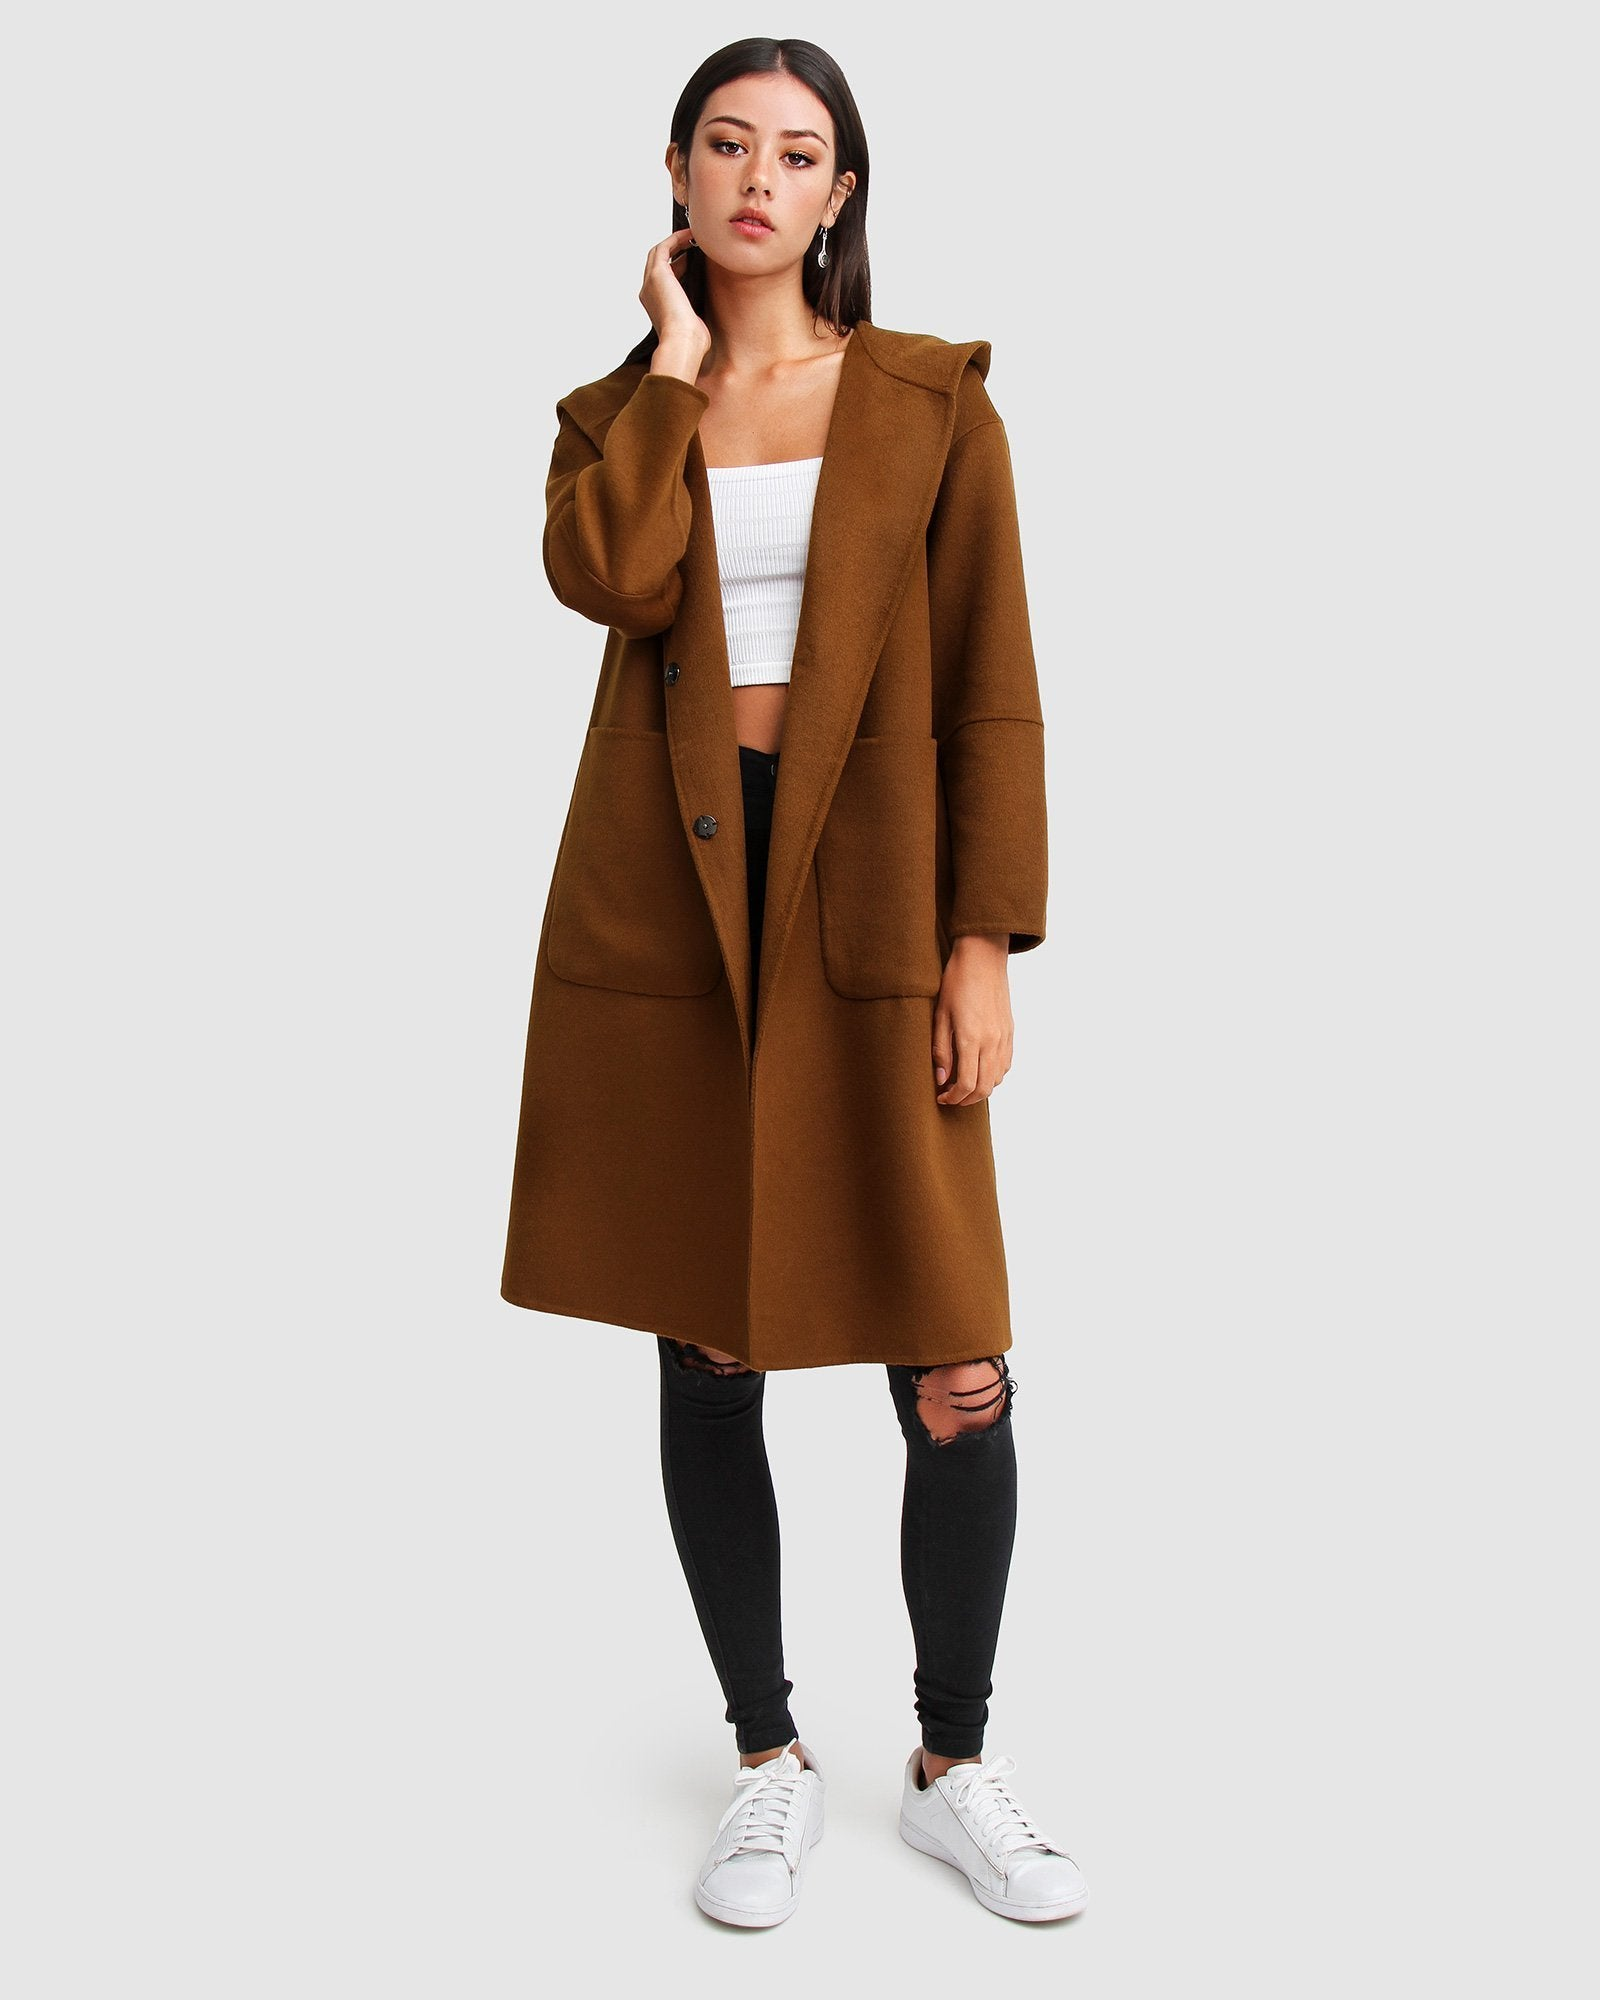 Walk This Way Wool Blend Oversized Coat - Dark Camel